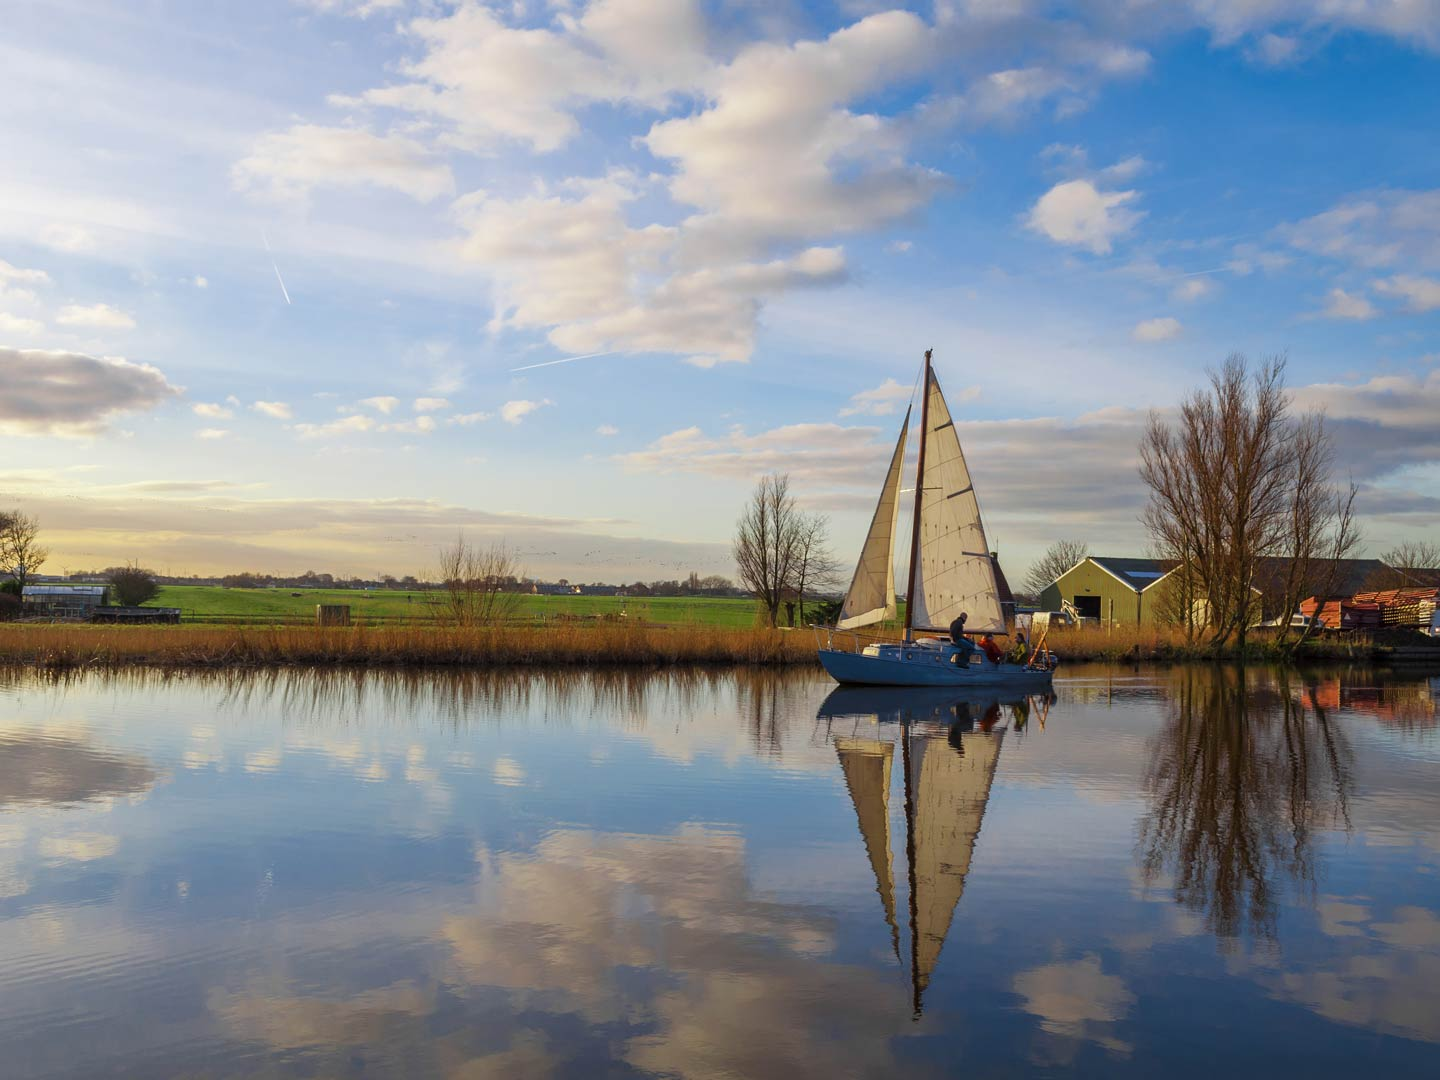 A sailboat on a canal in the Netherlands